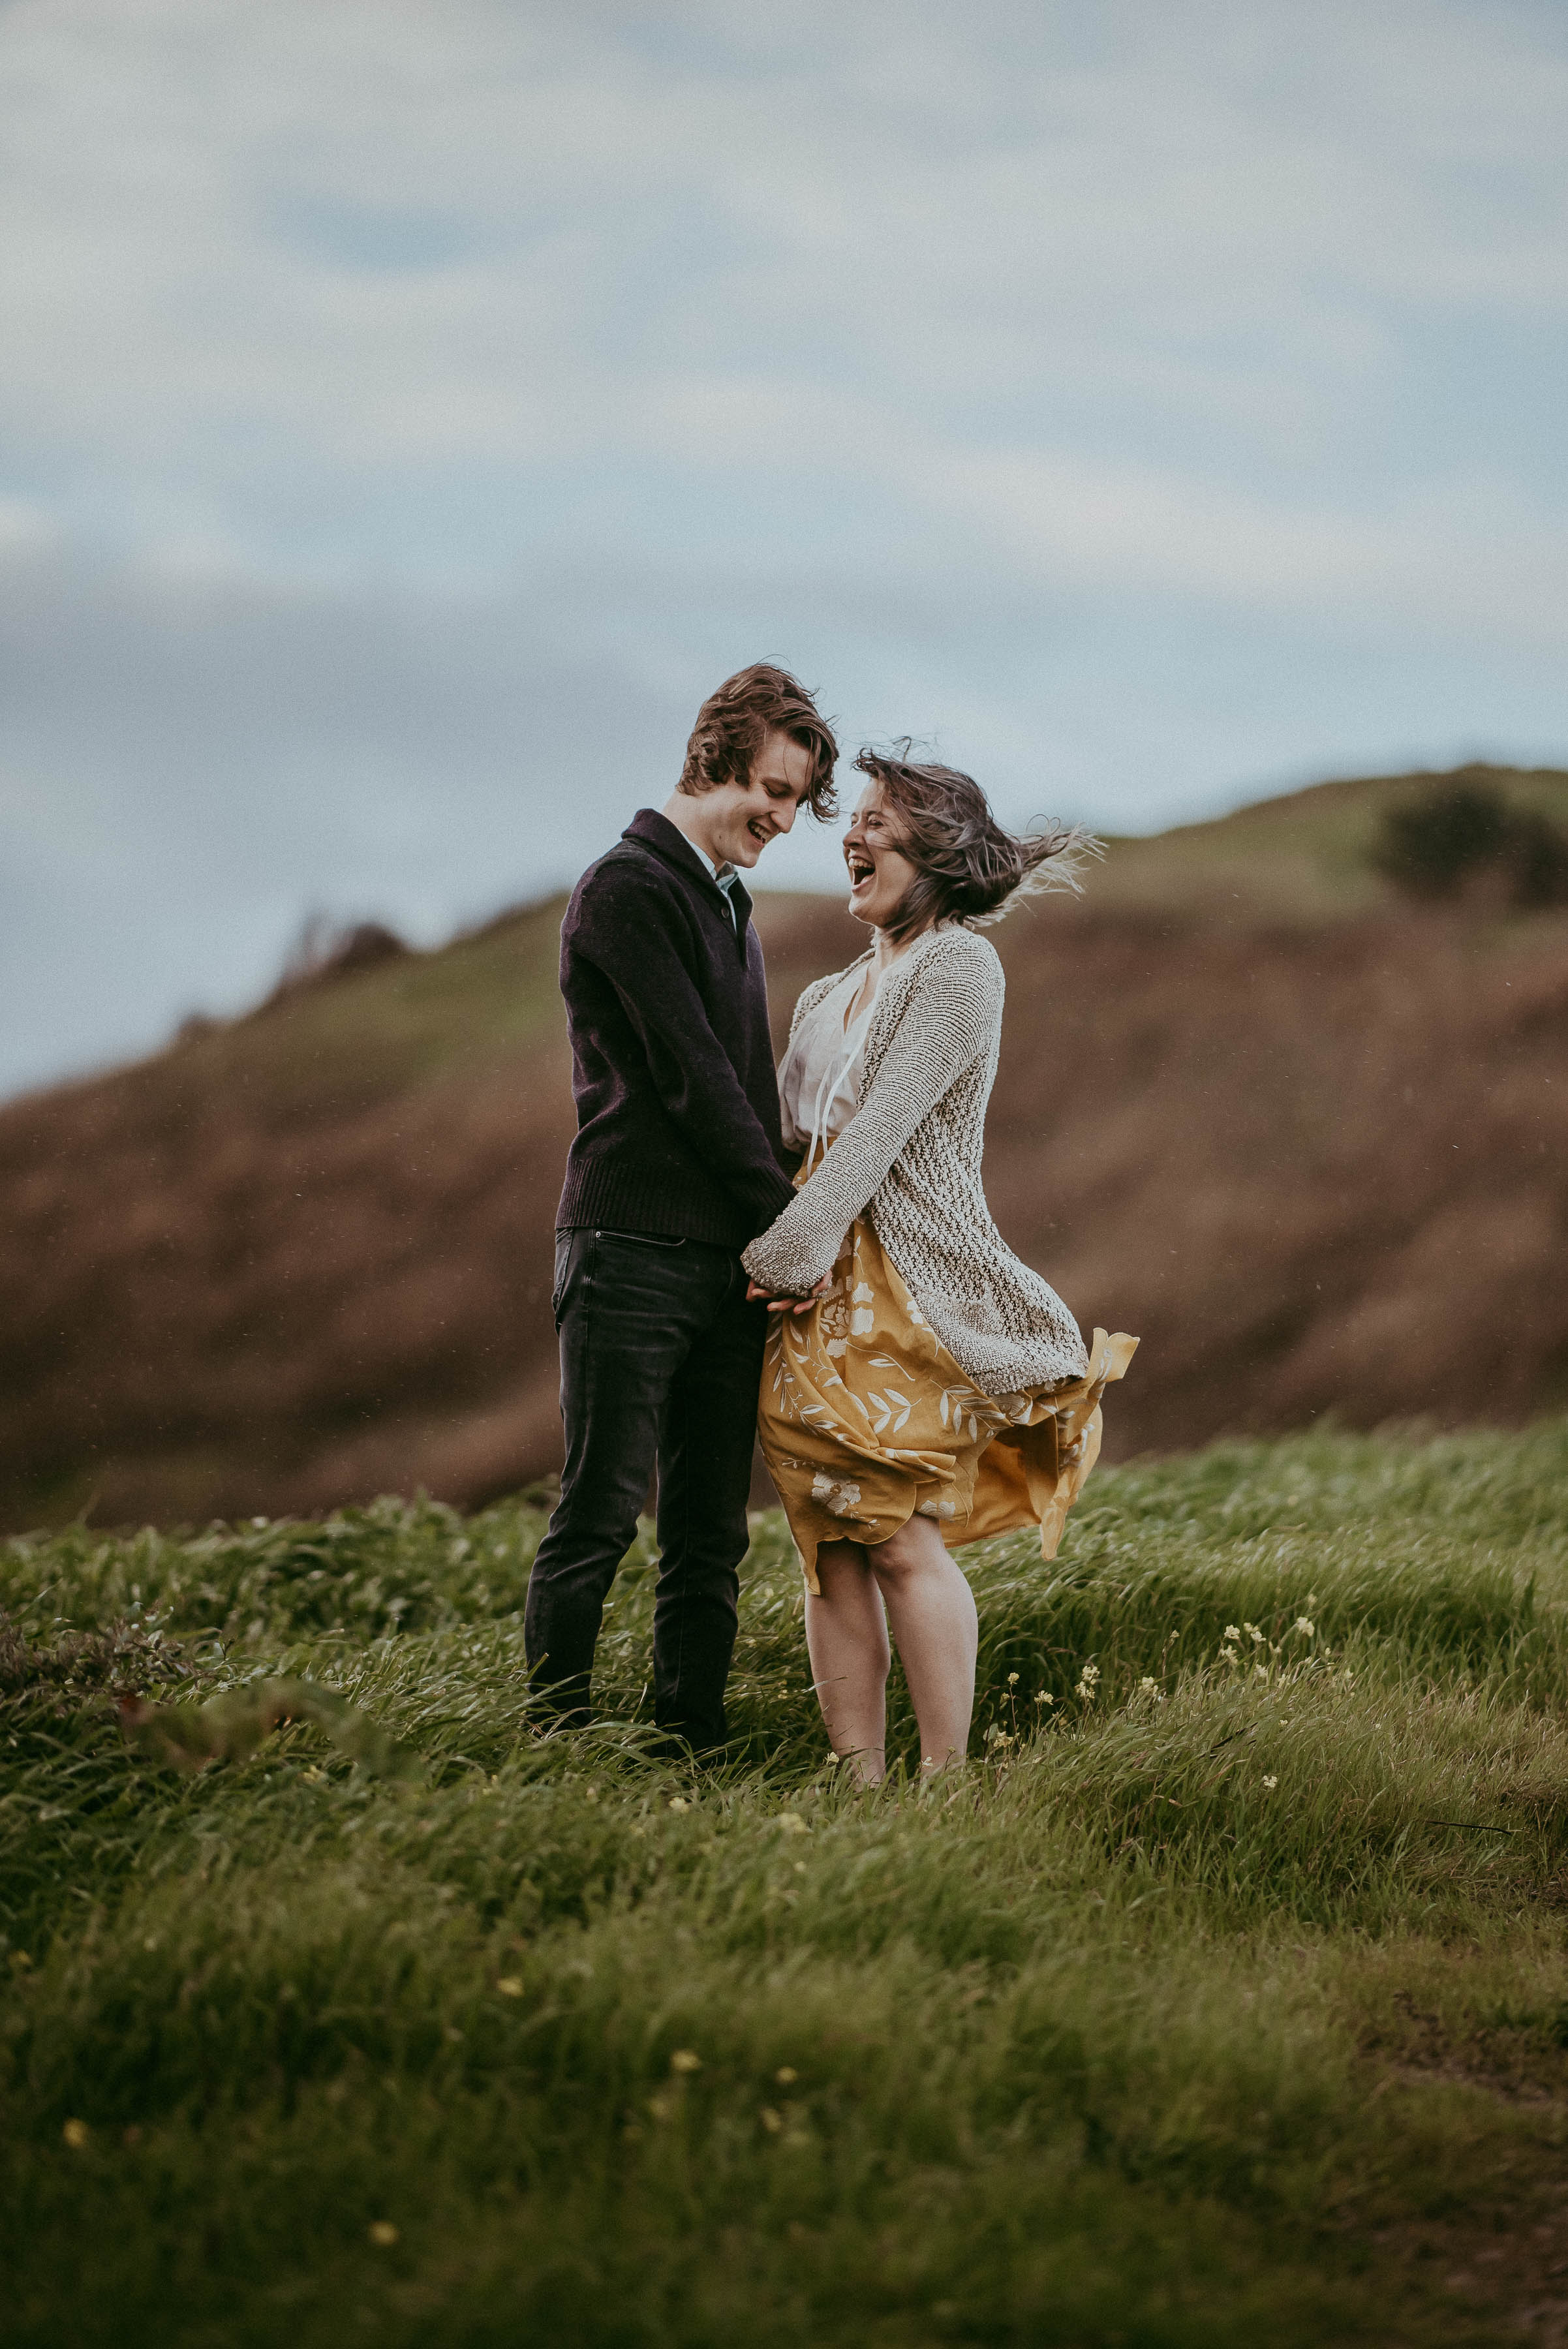 Lets_Spread_Beauty_Engagement Session20190212_000061.jpg